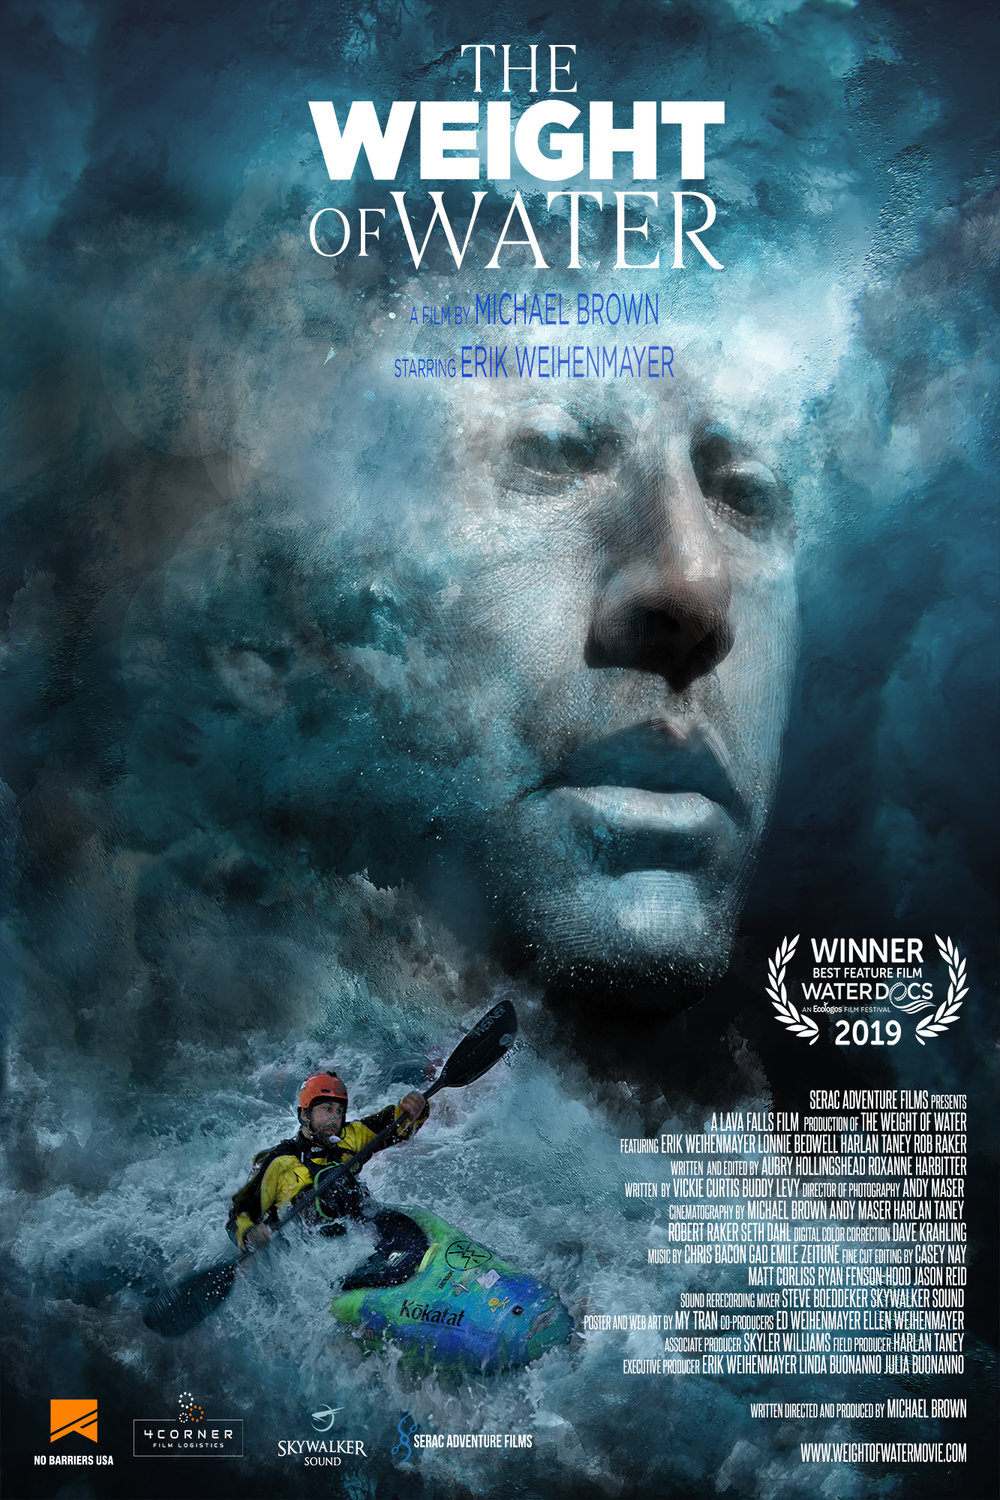 The Weight of Water Poster with WD laurels.jpg